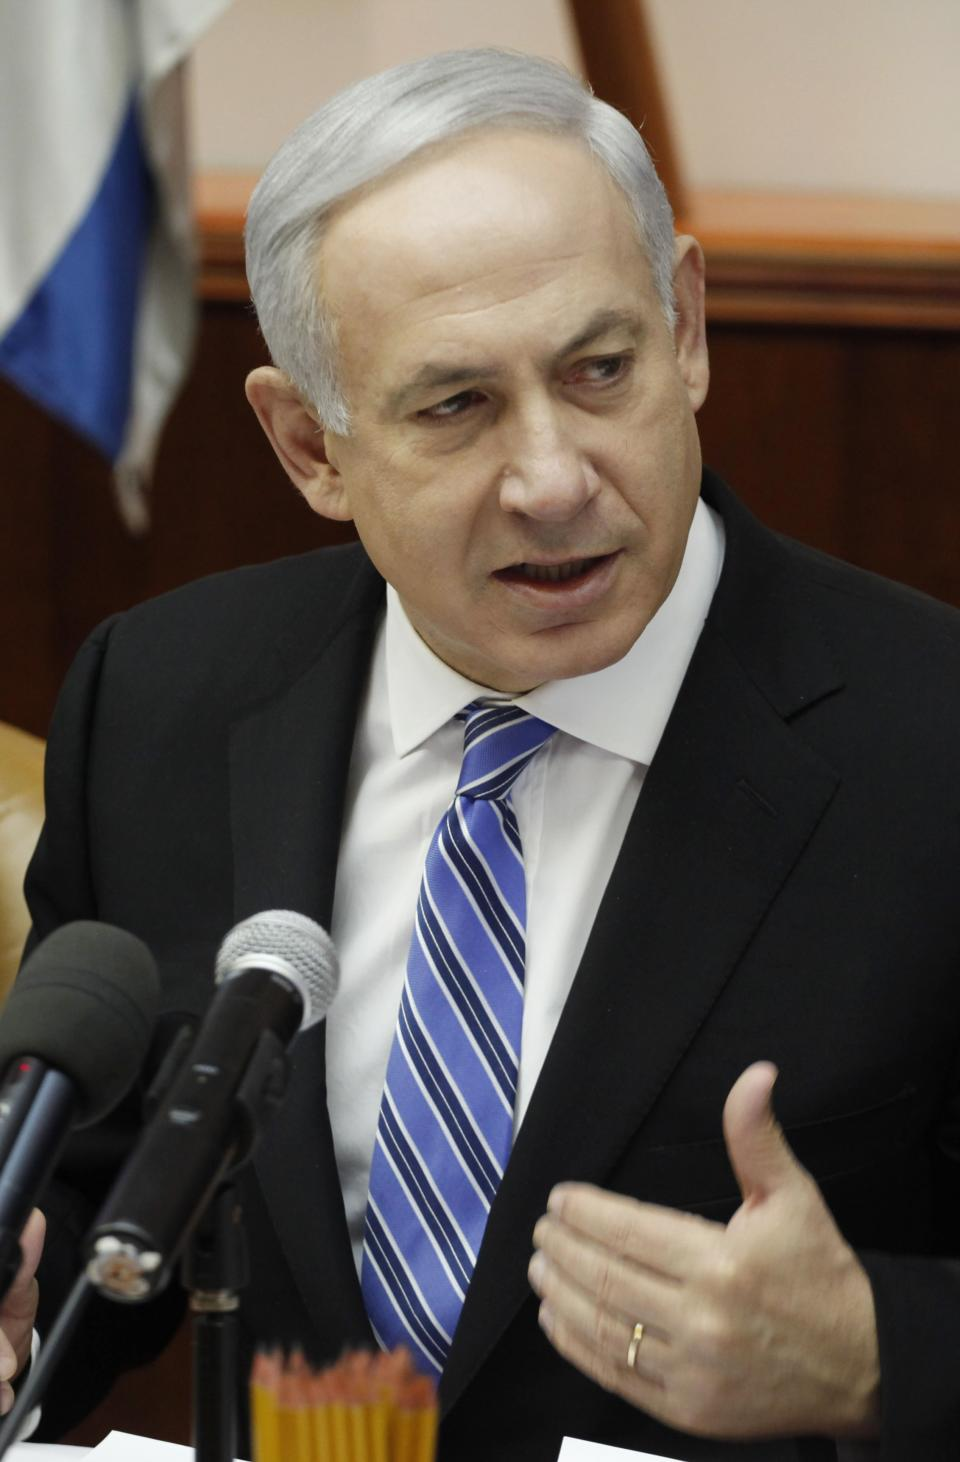 Israeli Prime Minister Benjamin Netanyahu addresses the weekly cabinet meeting at his Jerusalem office, Monday, May 7, 2012. Netanyahu said Monday his Likud Party is going to propose Sept. 4 as the date for early elections. (AP Photo/Gali Tibbon, Pool)